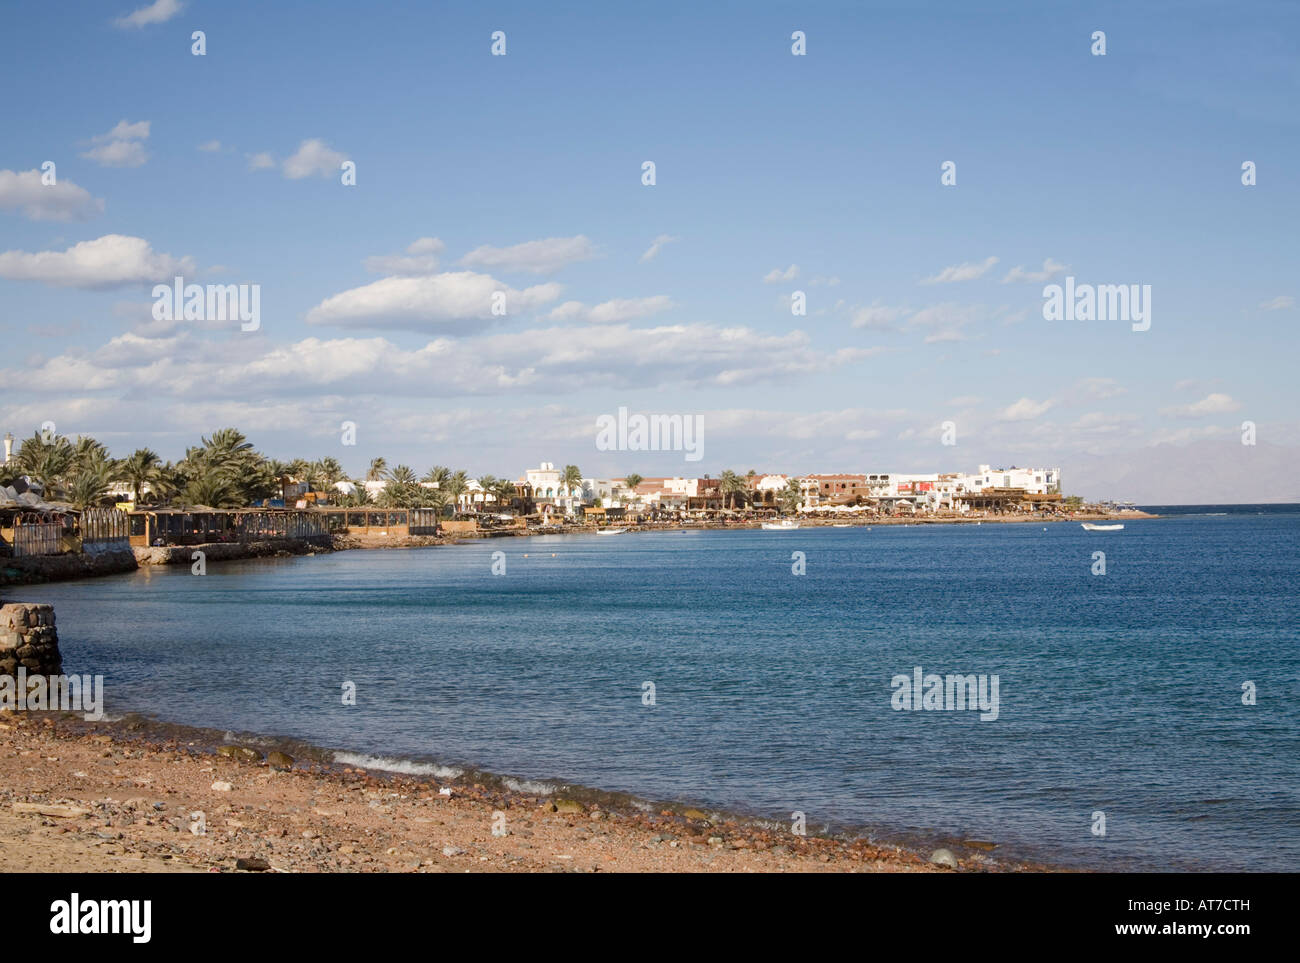 Dahab Sinai Egypt North Africa February Looking along the shoreline of this popular tourist destination - Stock Image